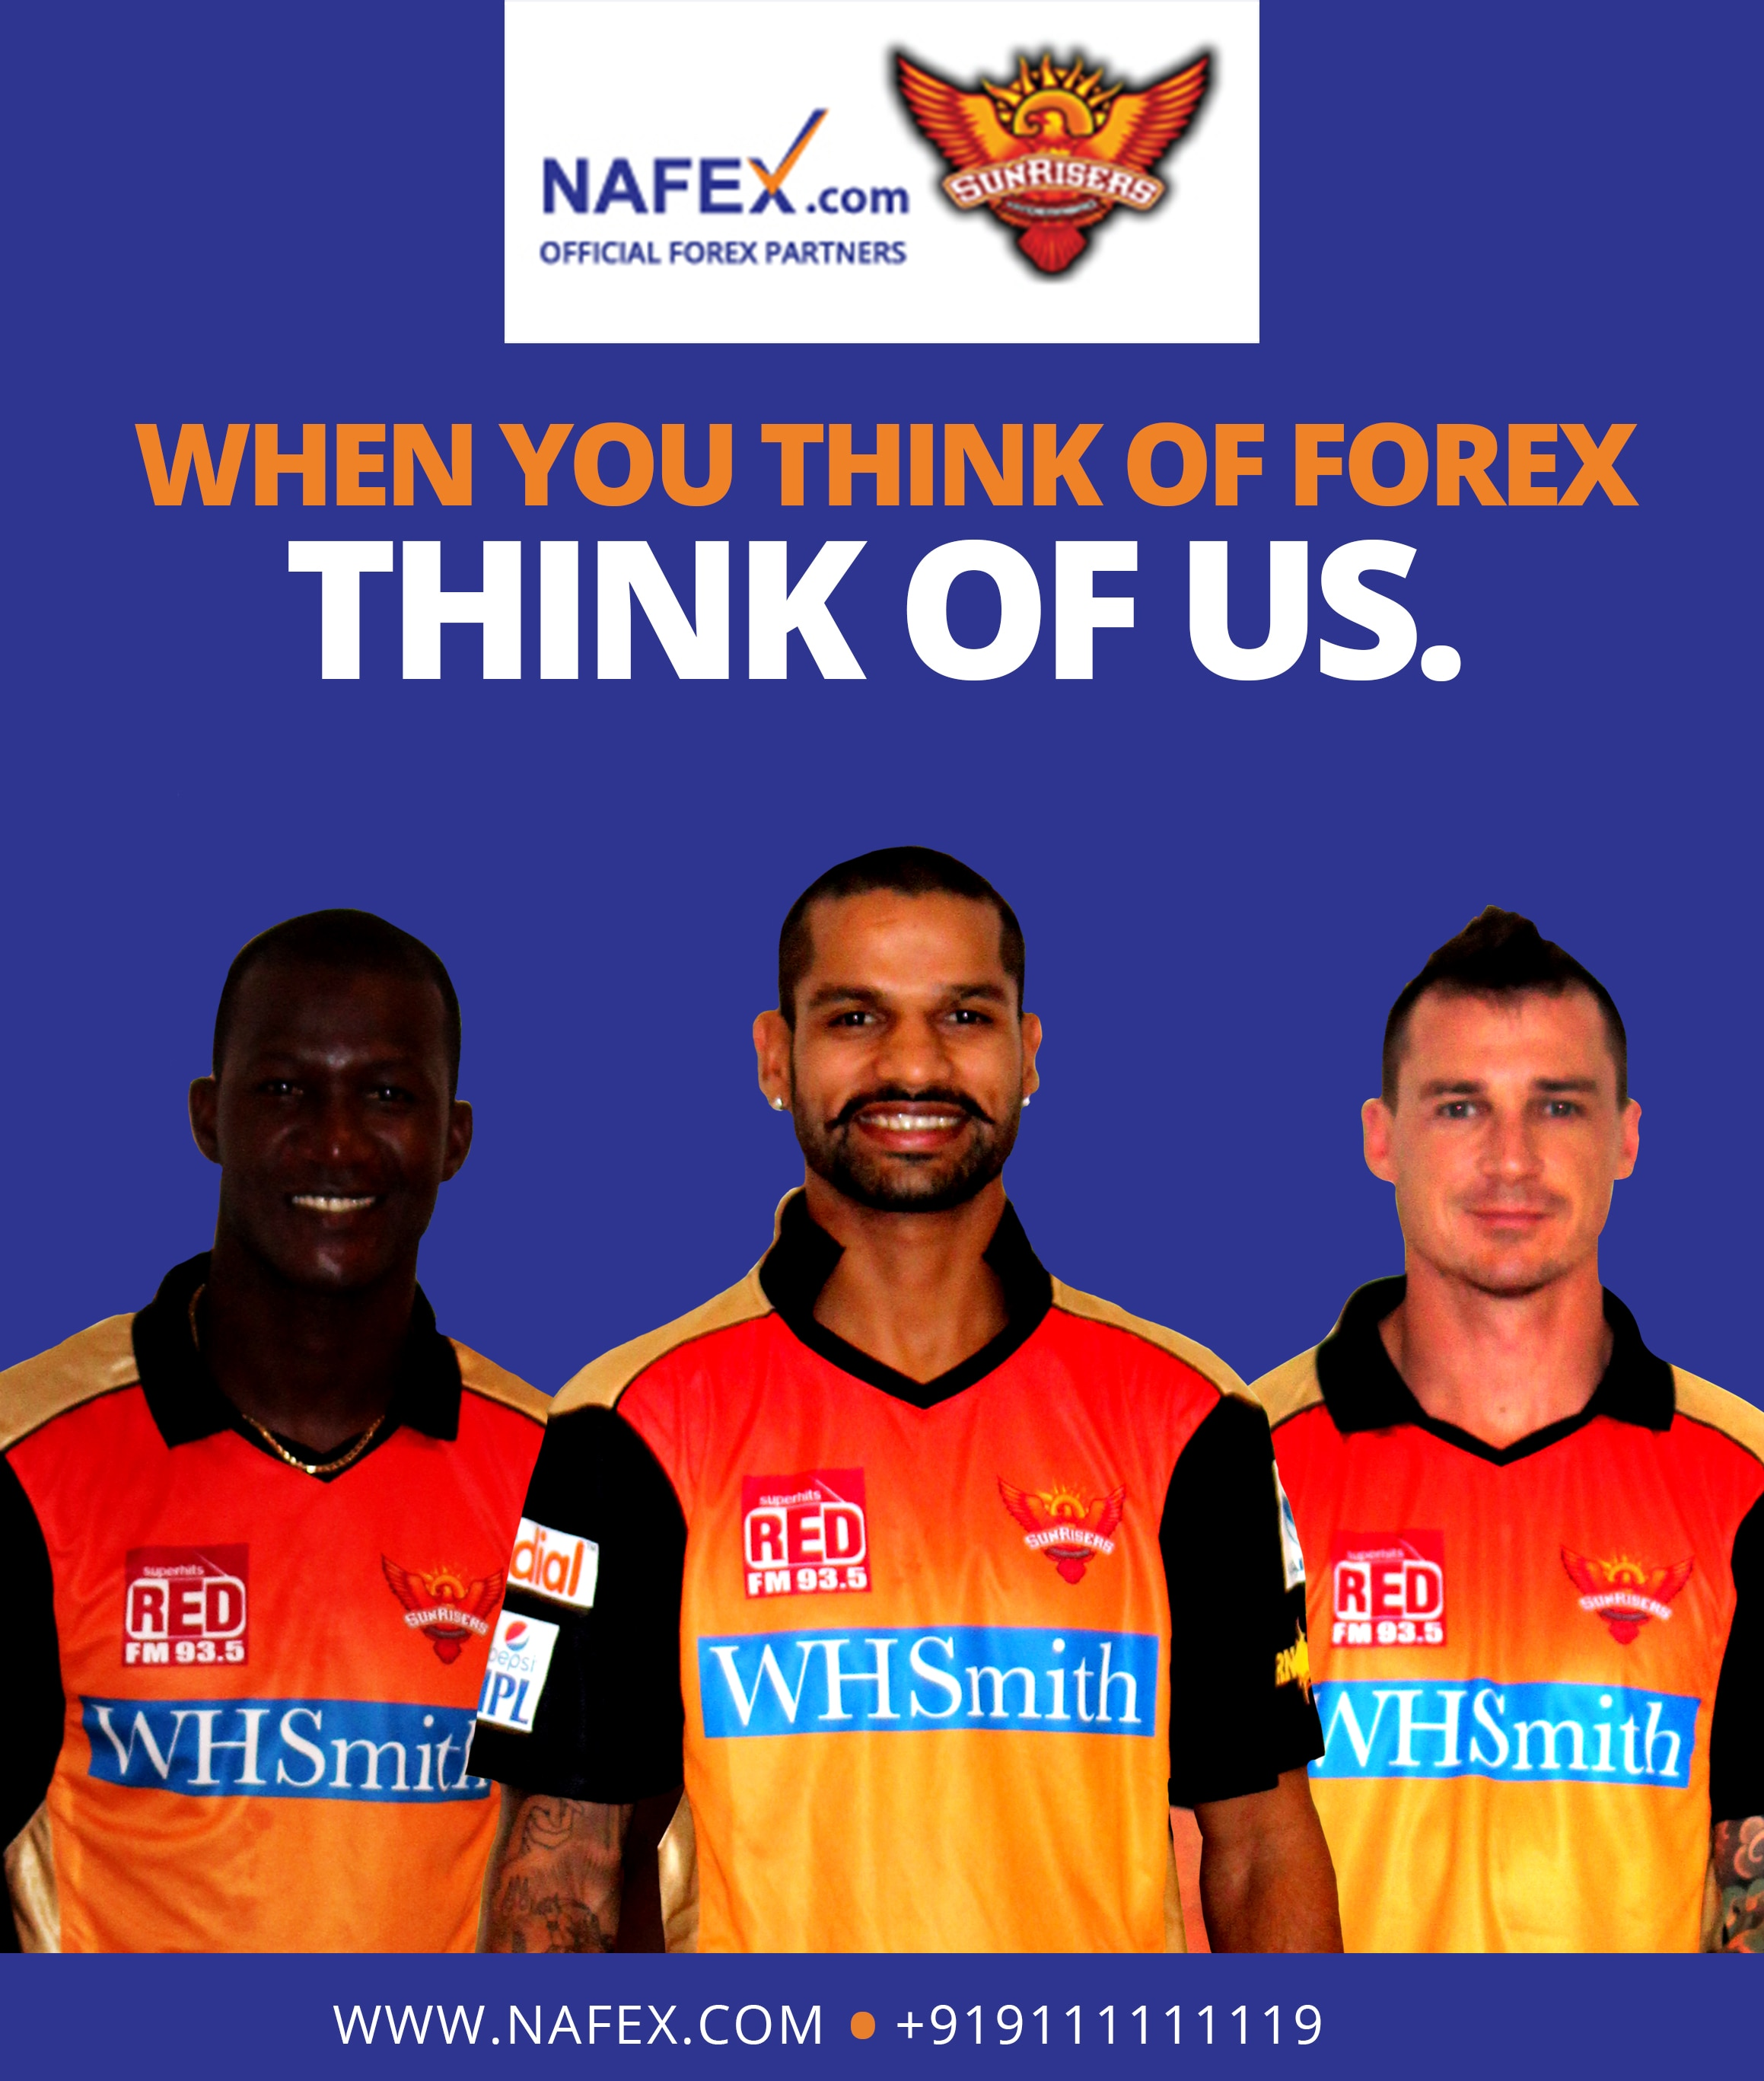 Nafex - Mandaveli Foreign Currency Exchange Dealers Agents Mandaveli, Online Travellers Cheque & Forex Prepaid Card